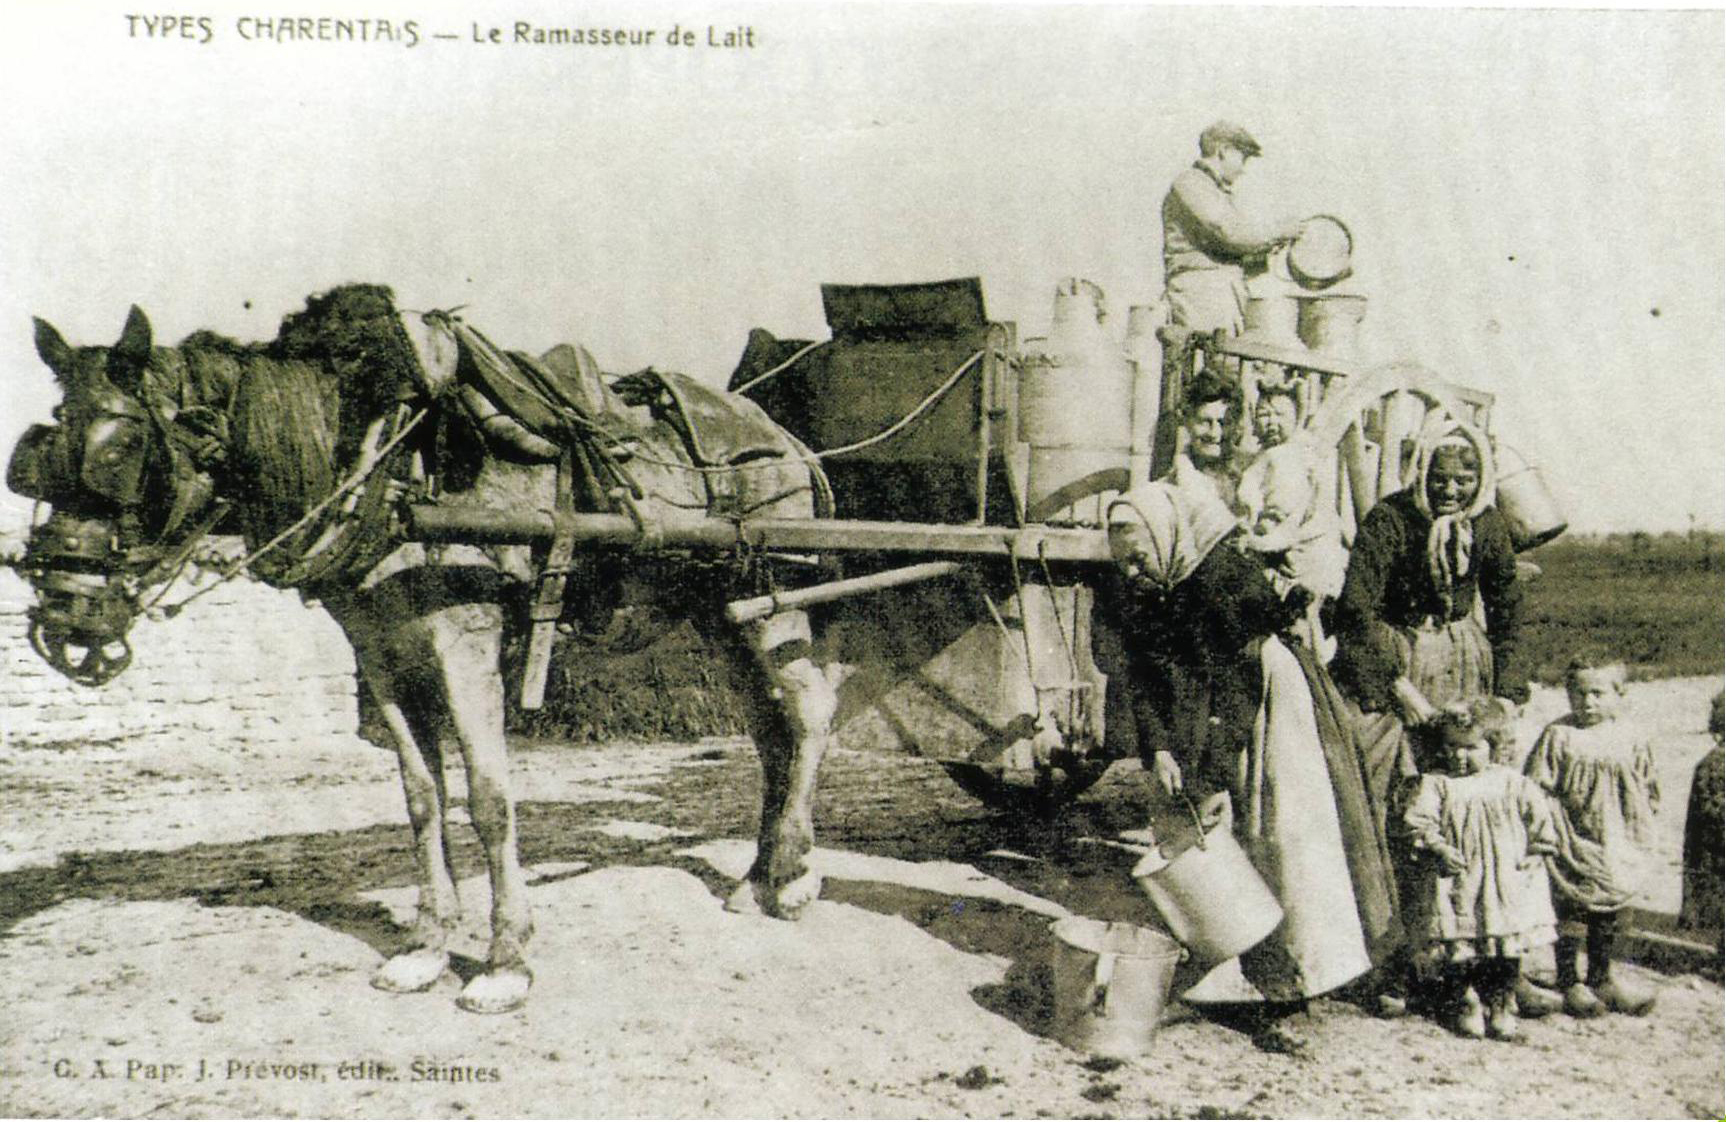 Le collecteur de lait aunis 1920